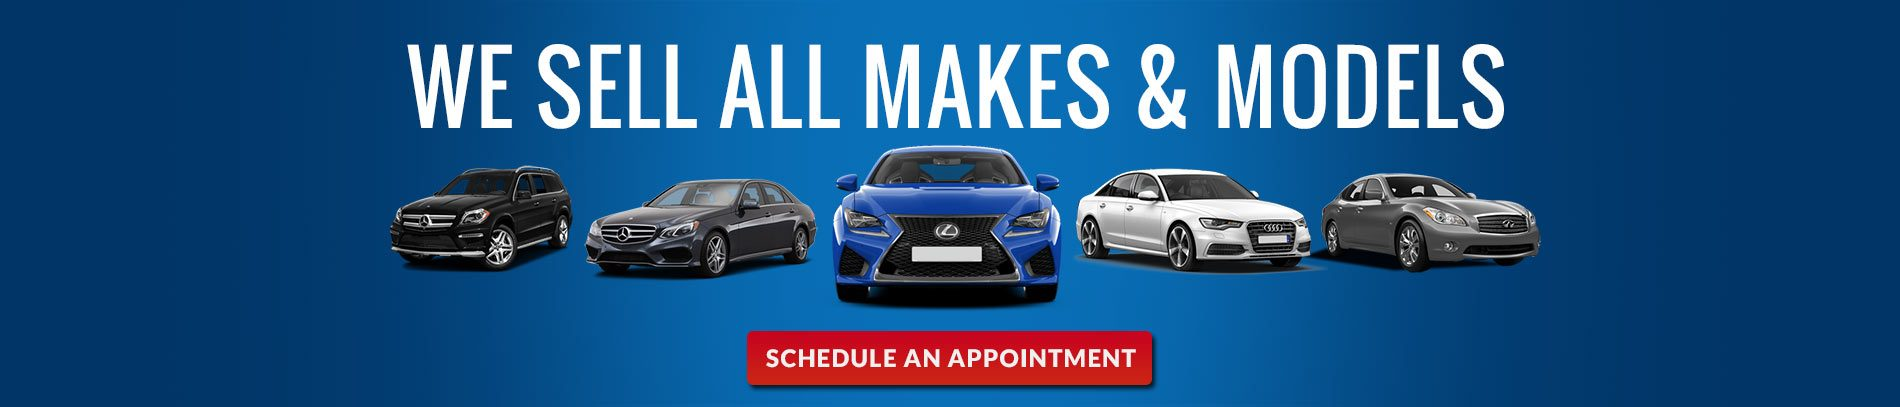 Car Dealerships Springfield Ma >> Used car dealer in Manchester, Waterbury, Norwich ...